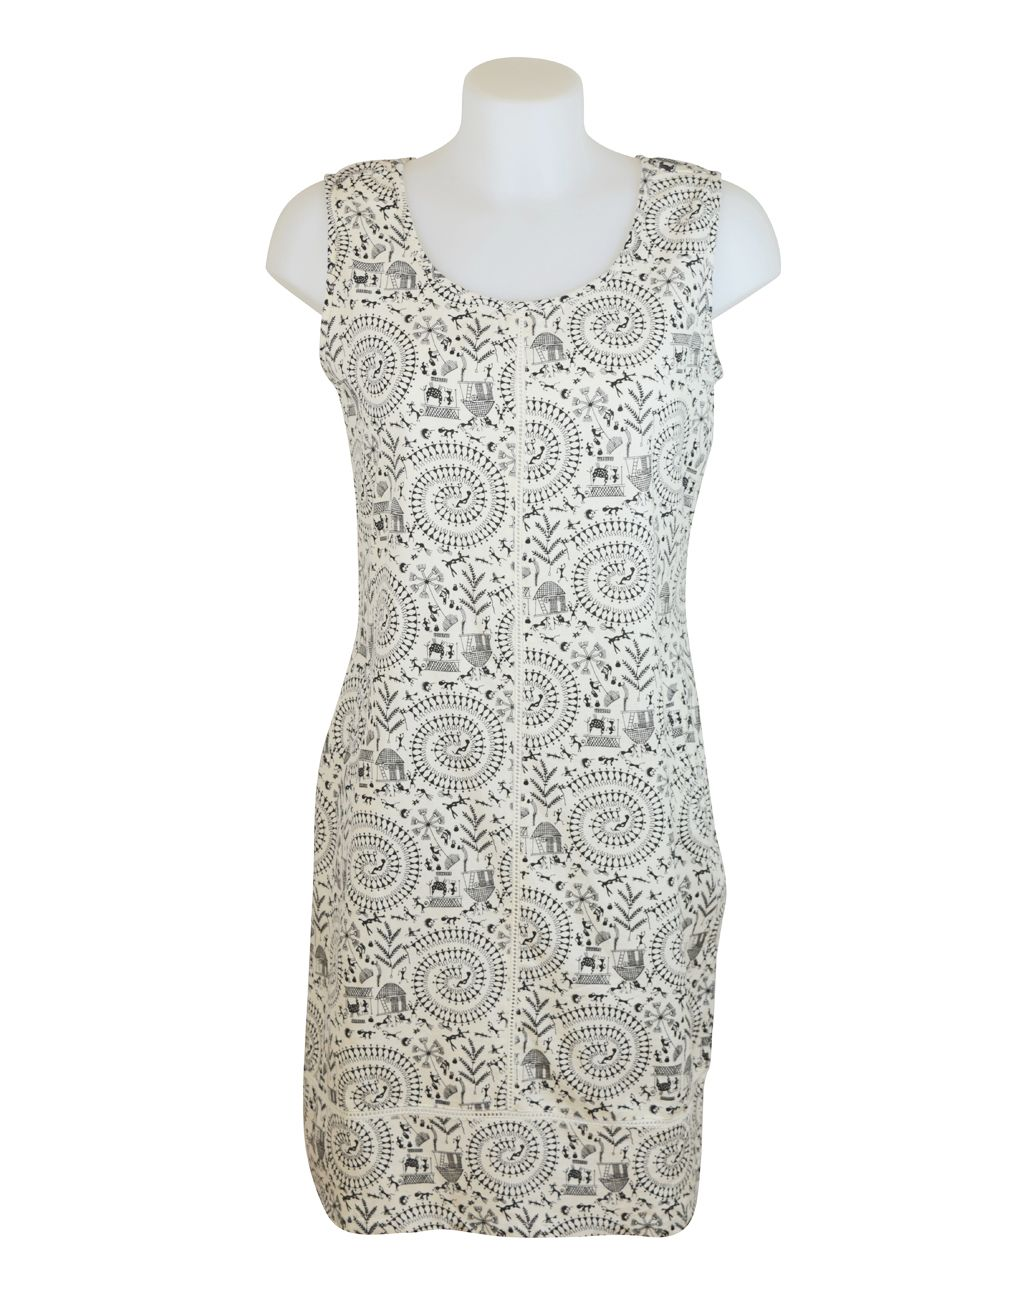 Alice Collins Harriet Tribal Dress 8 XS